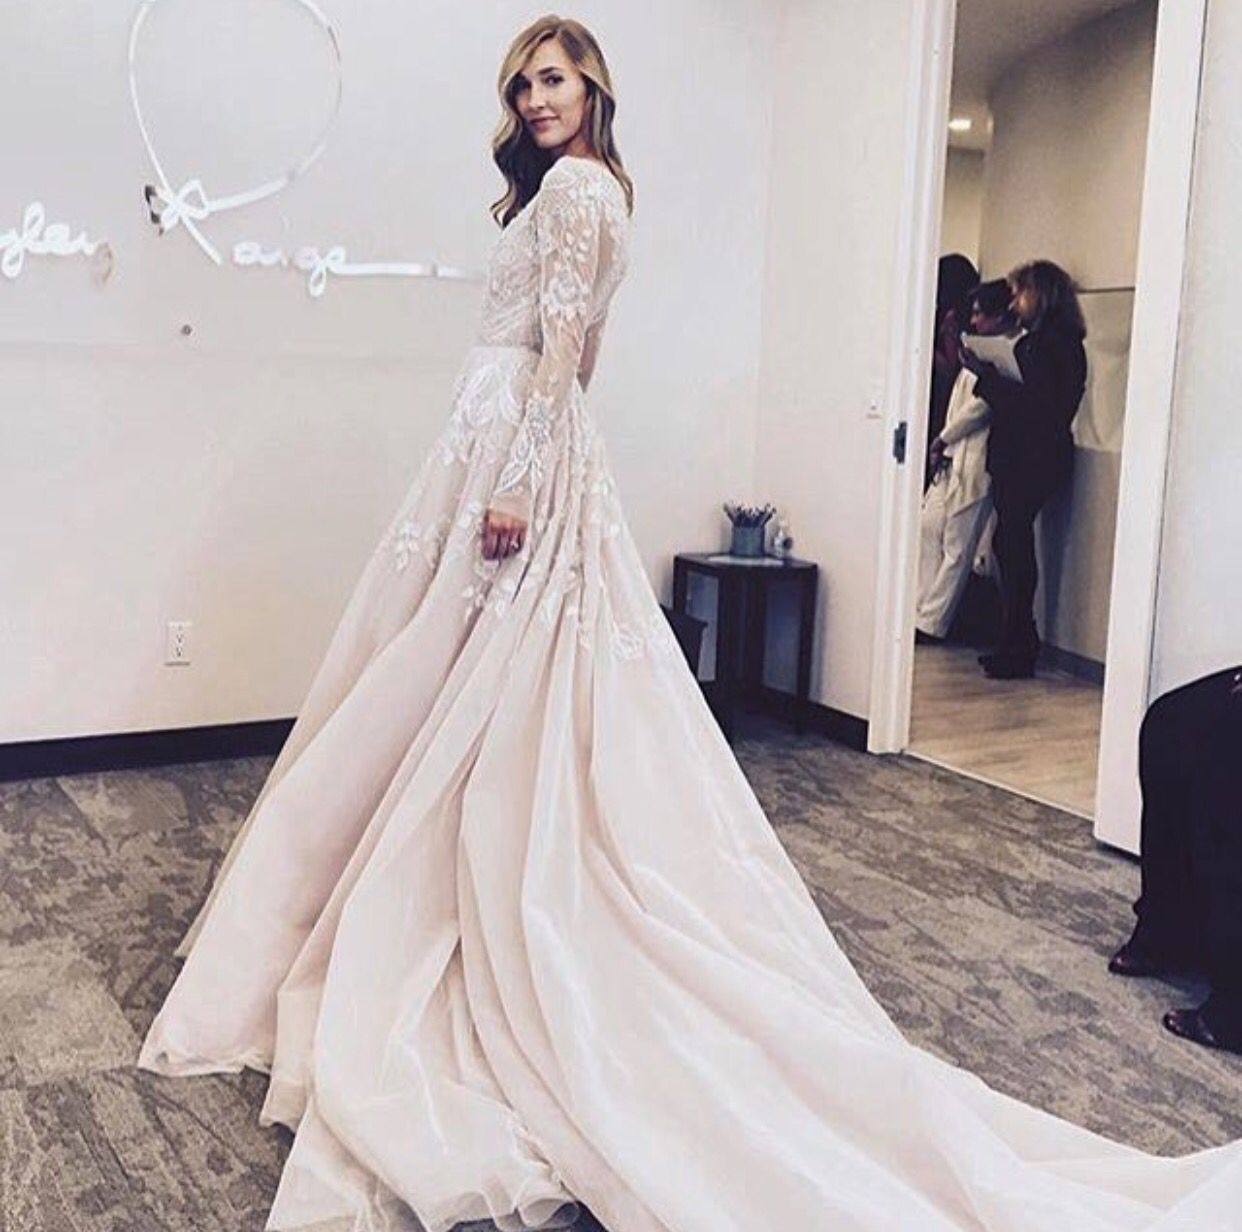 Super Haley gown by Haley Paige (With images) | Wedding dresses, Dream FC-68